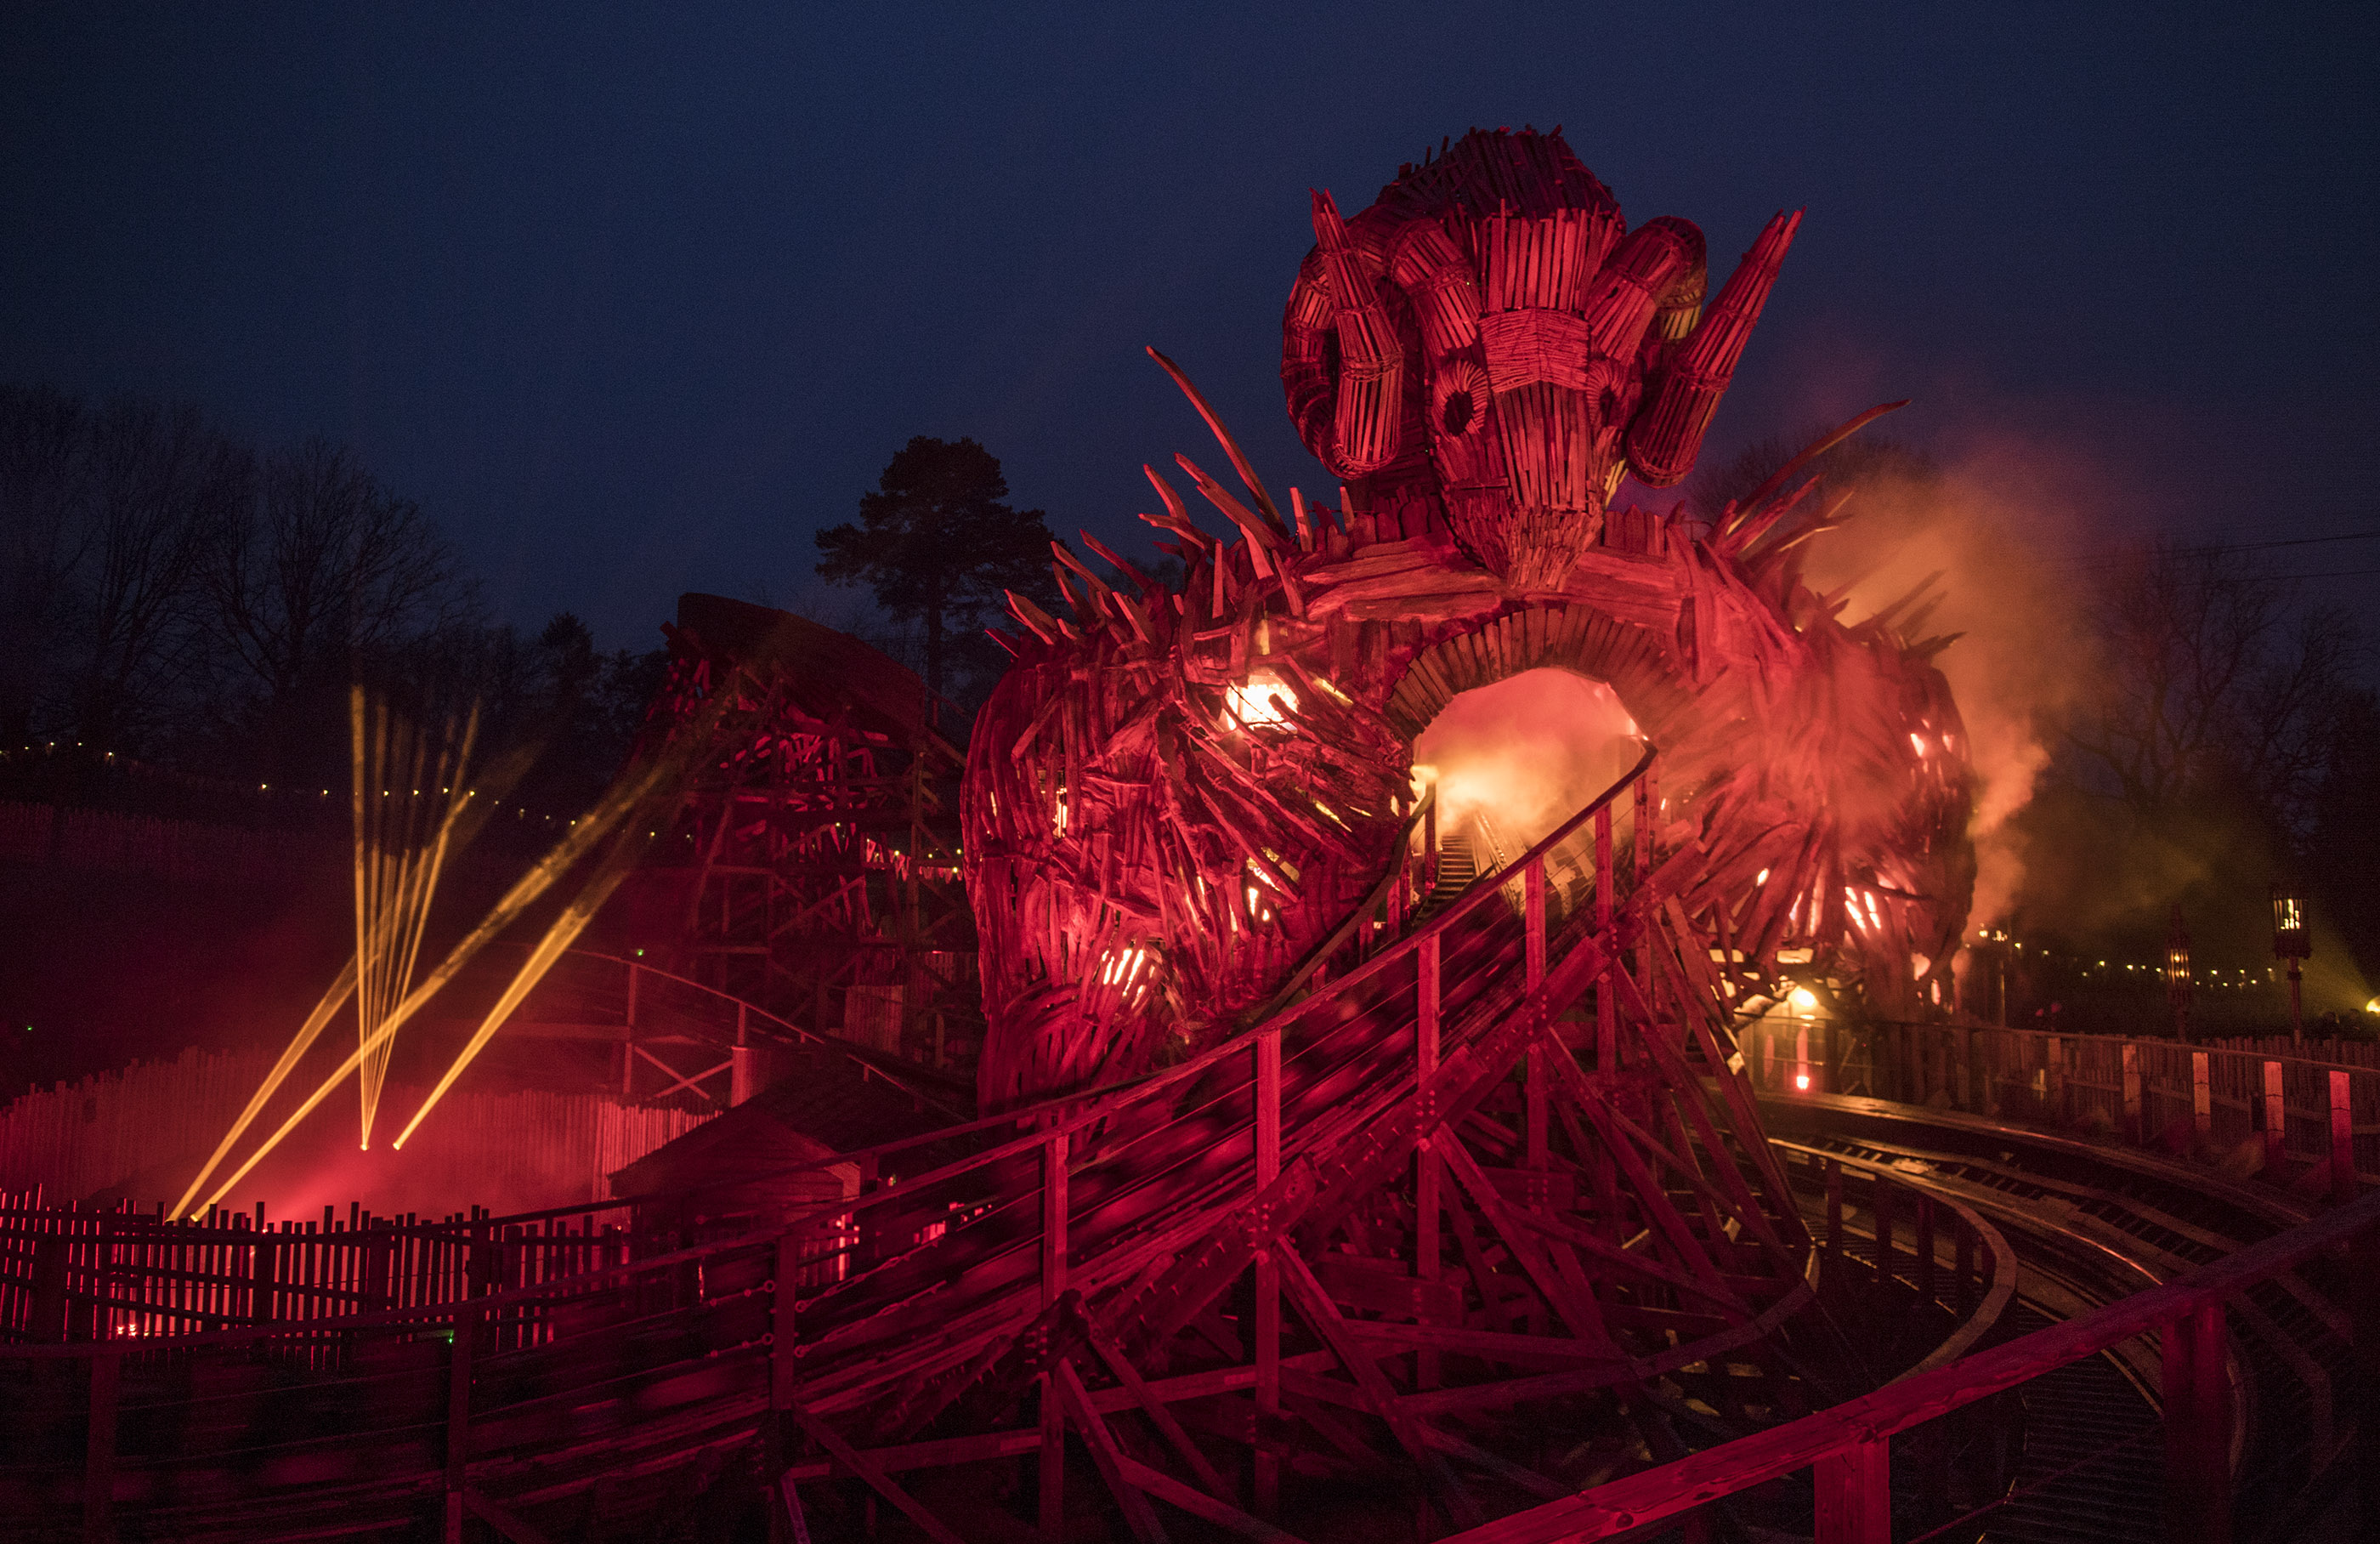 Wicker Man ride at night